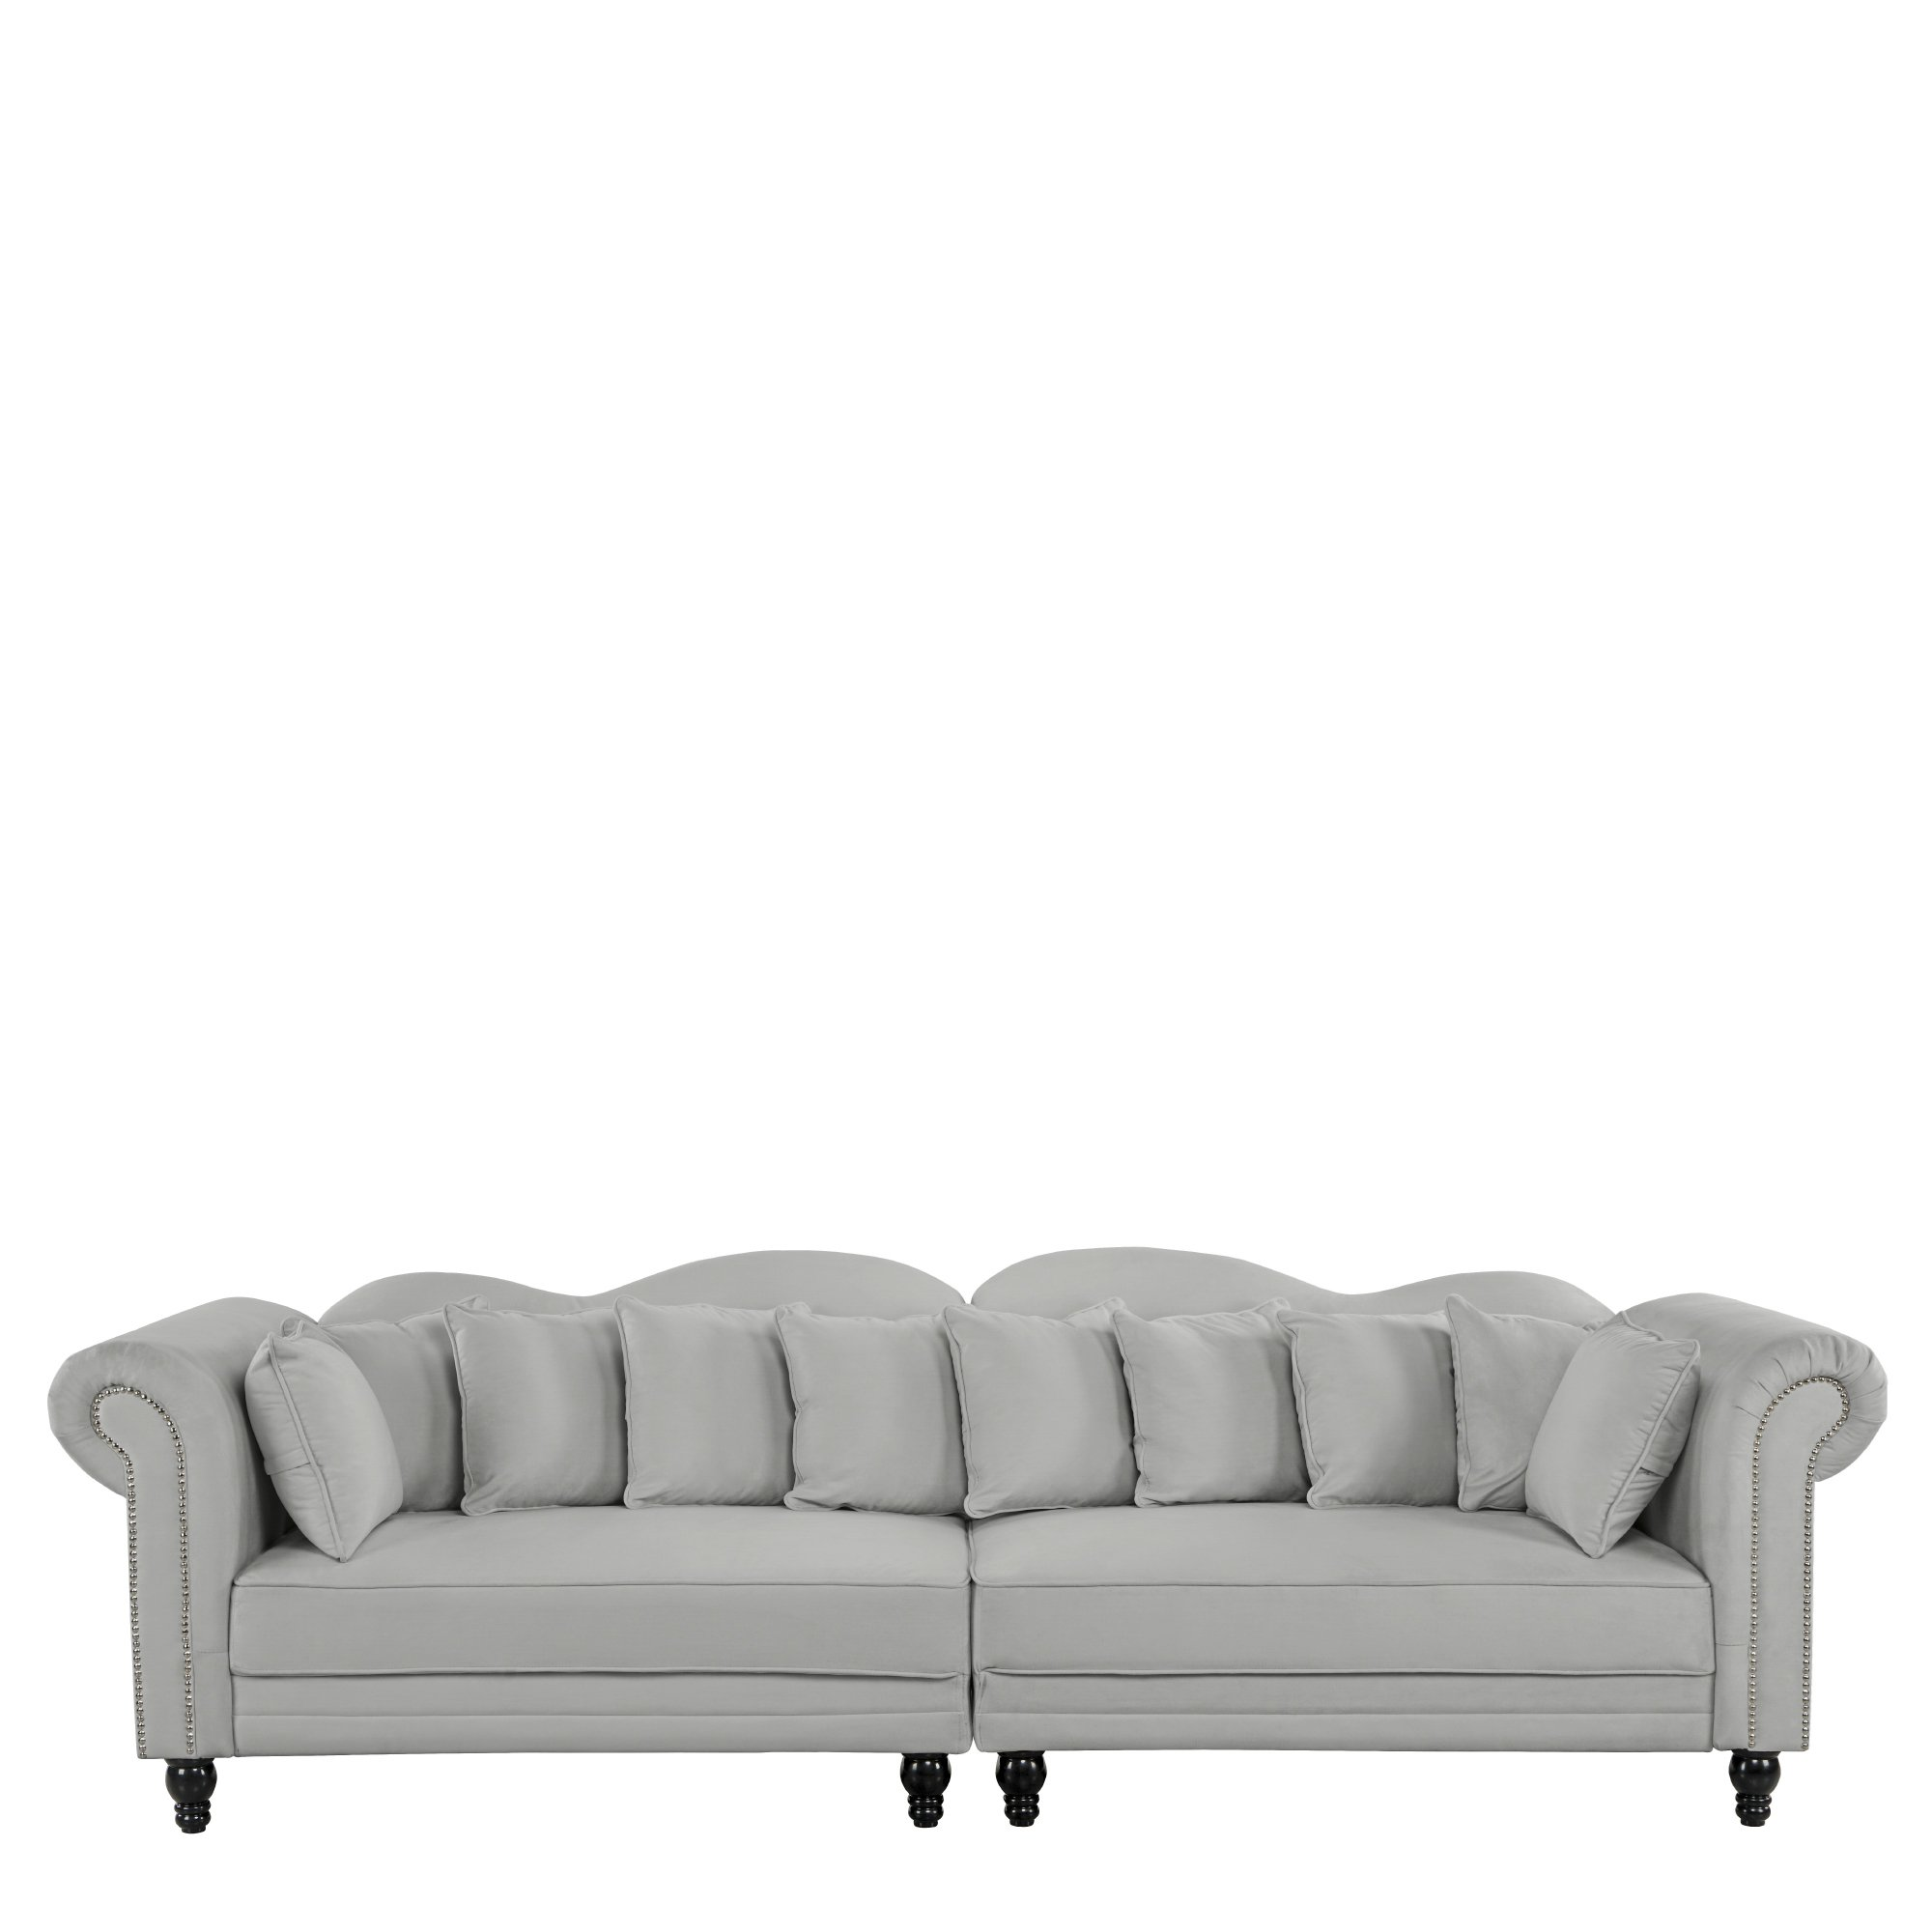 Details about 2 PC Large Chesterfield Sofa, Velvet Couch Scroll Arms  Nailhead Trim, Light Grey